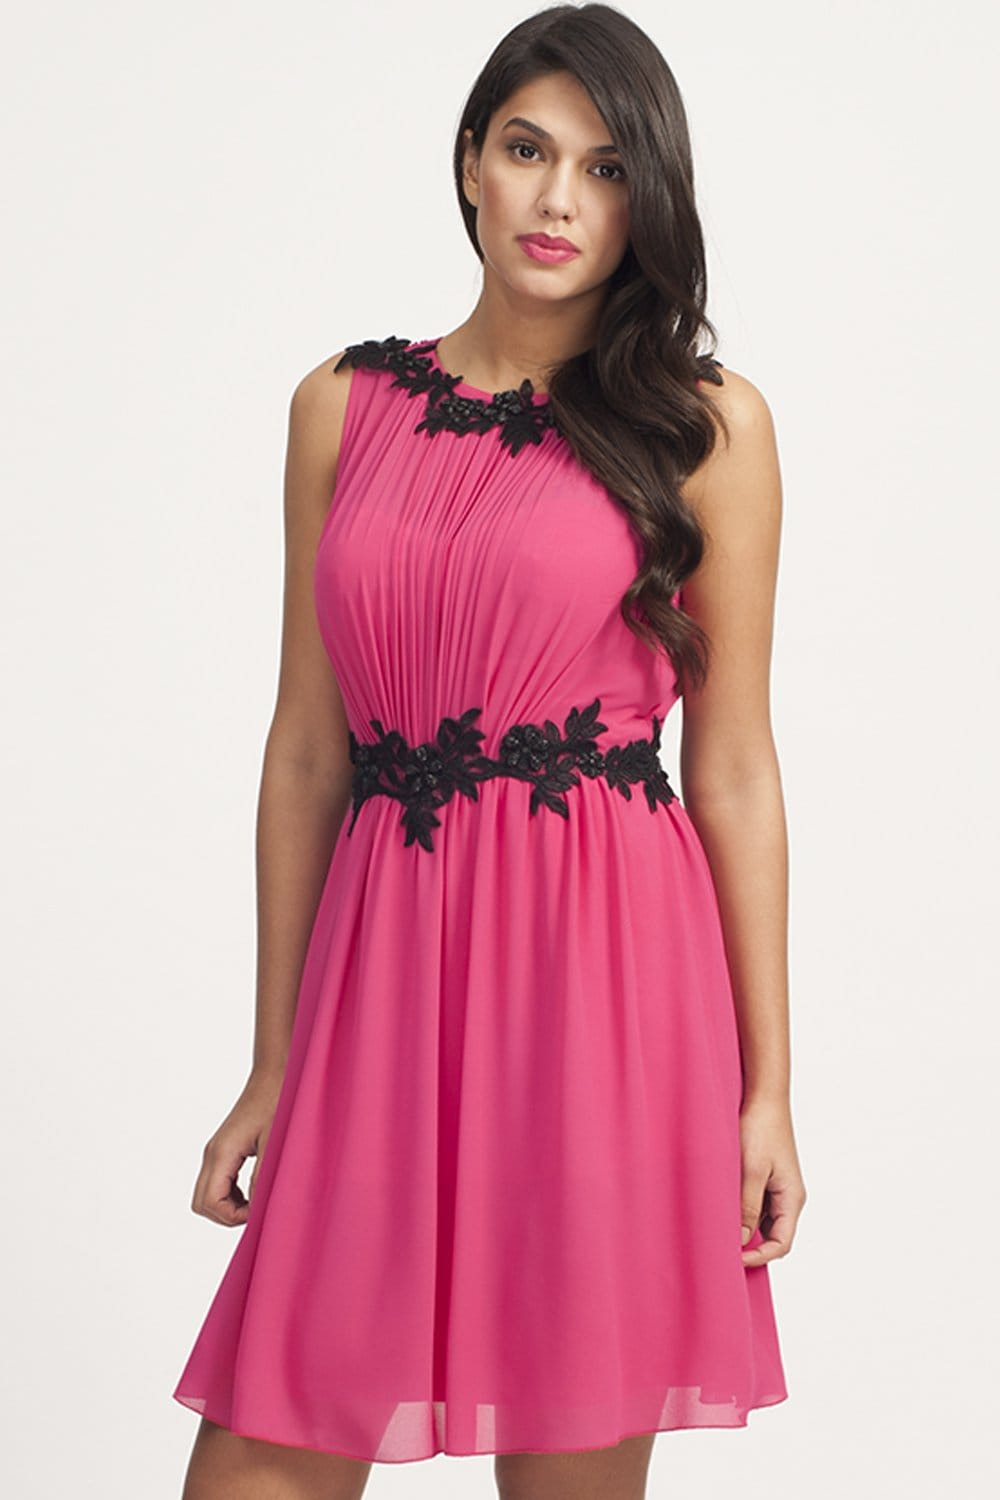 Evening Dresses & Gowns Ever-Pretty makes shopping for an evening dress simple, with a large selection of gorgeous formal dresses in a range of sophisticated styles. Our affordable evening dresses are ideal for formal and semi-formal events such as balls, black tie .